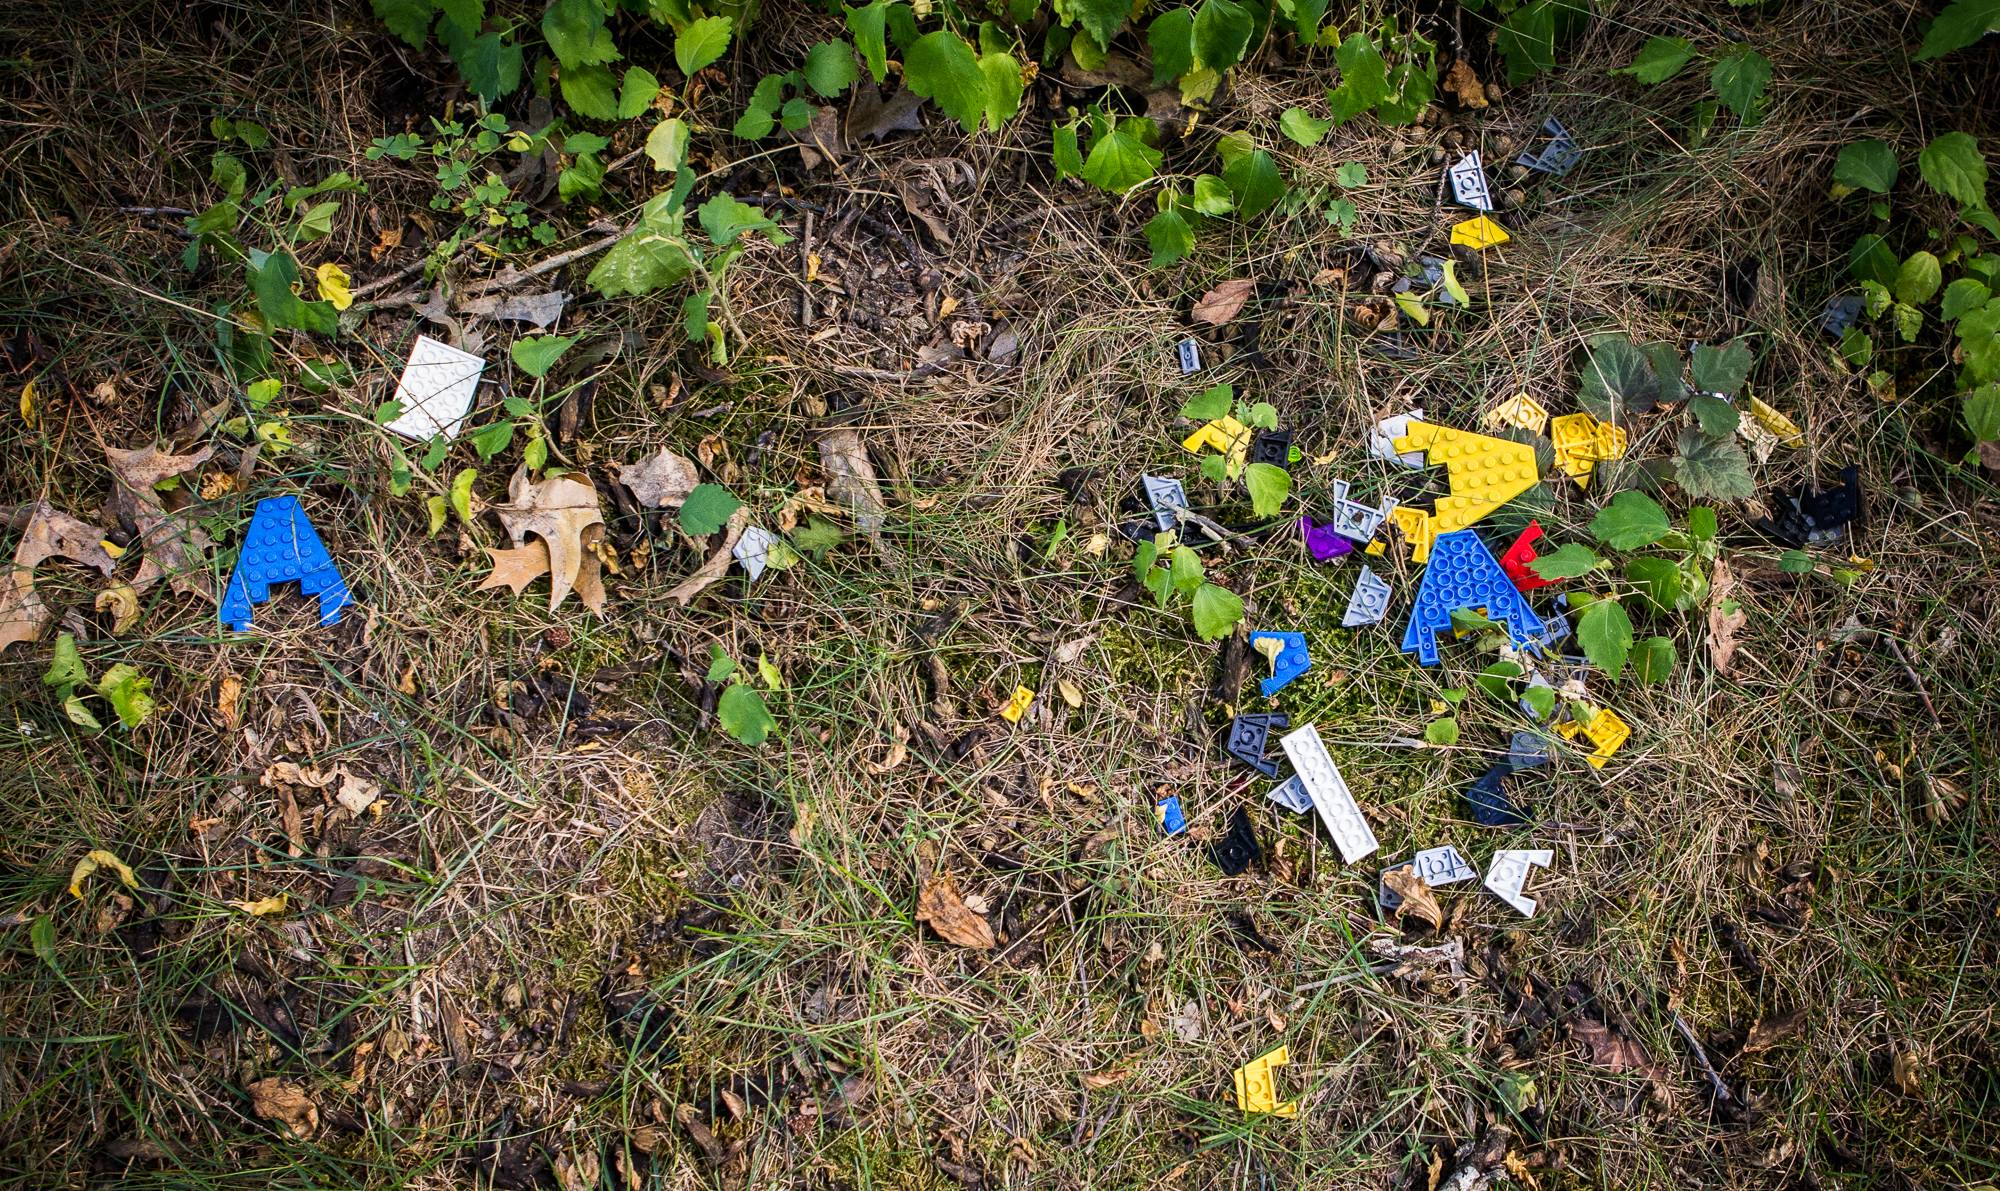 LEGO in grass and bushes